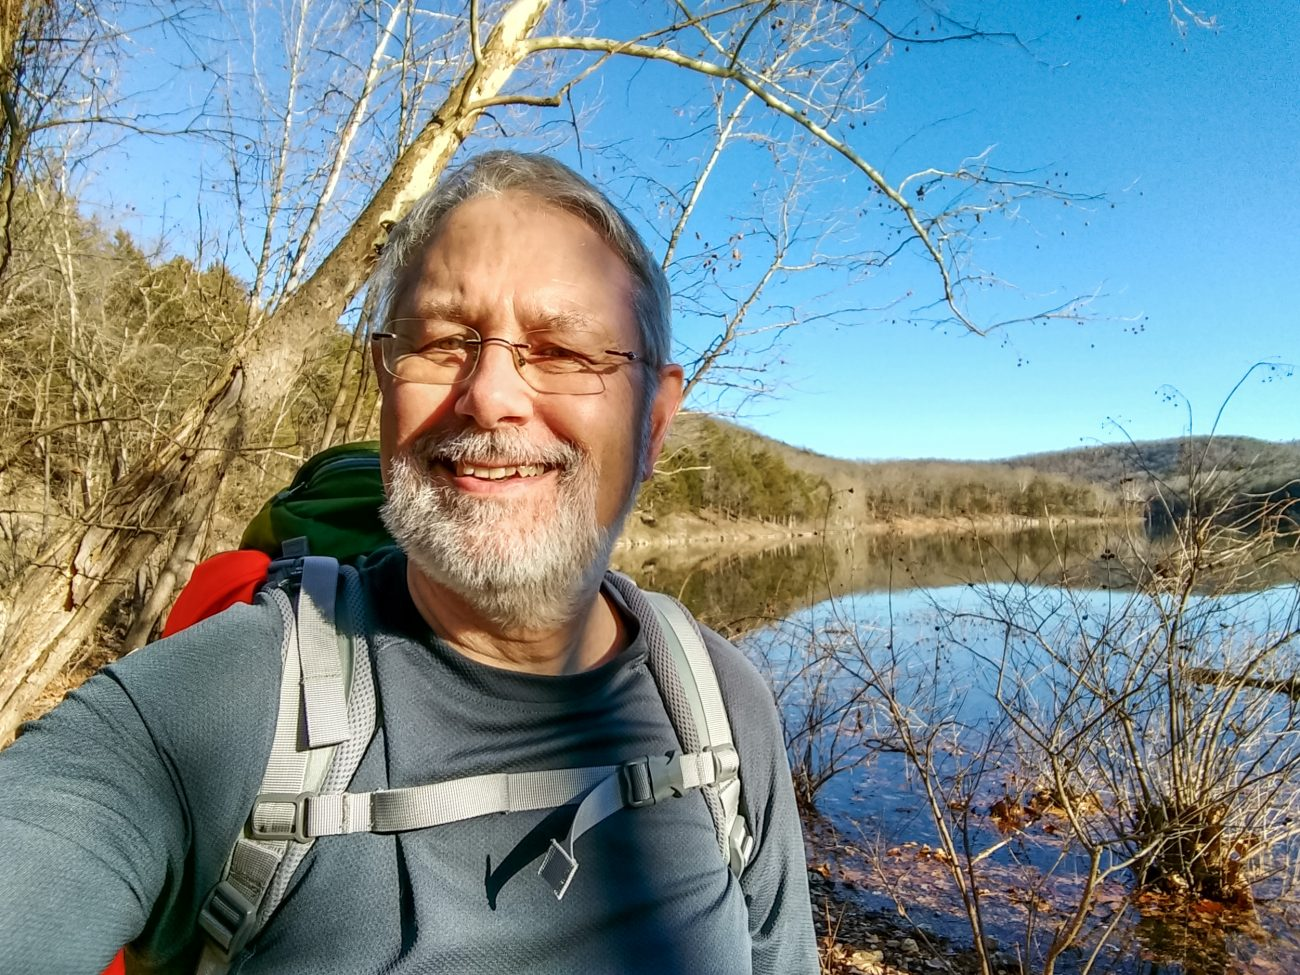 Gary Allman, self protrait by table rock lake, January 2019.